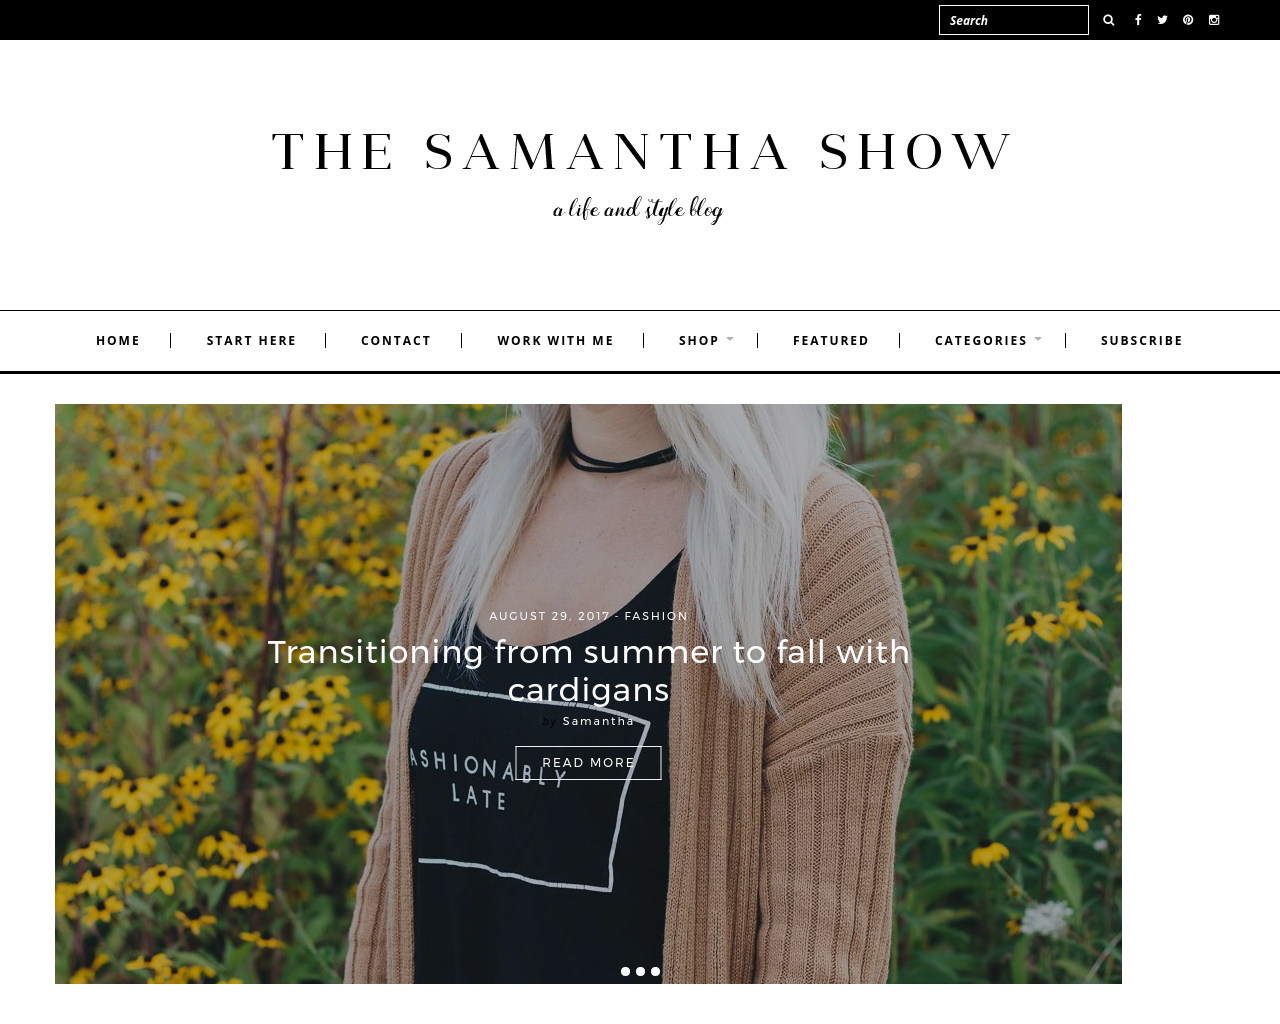 The-Samantha-Show-Advertising-Reviews-Pricing